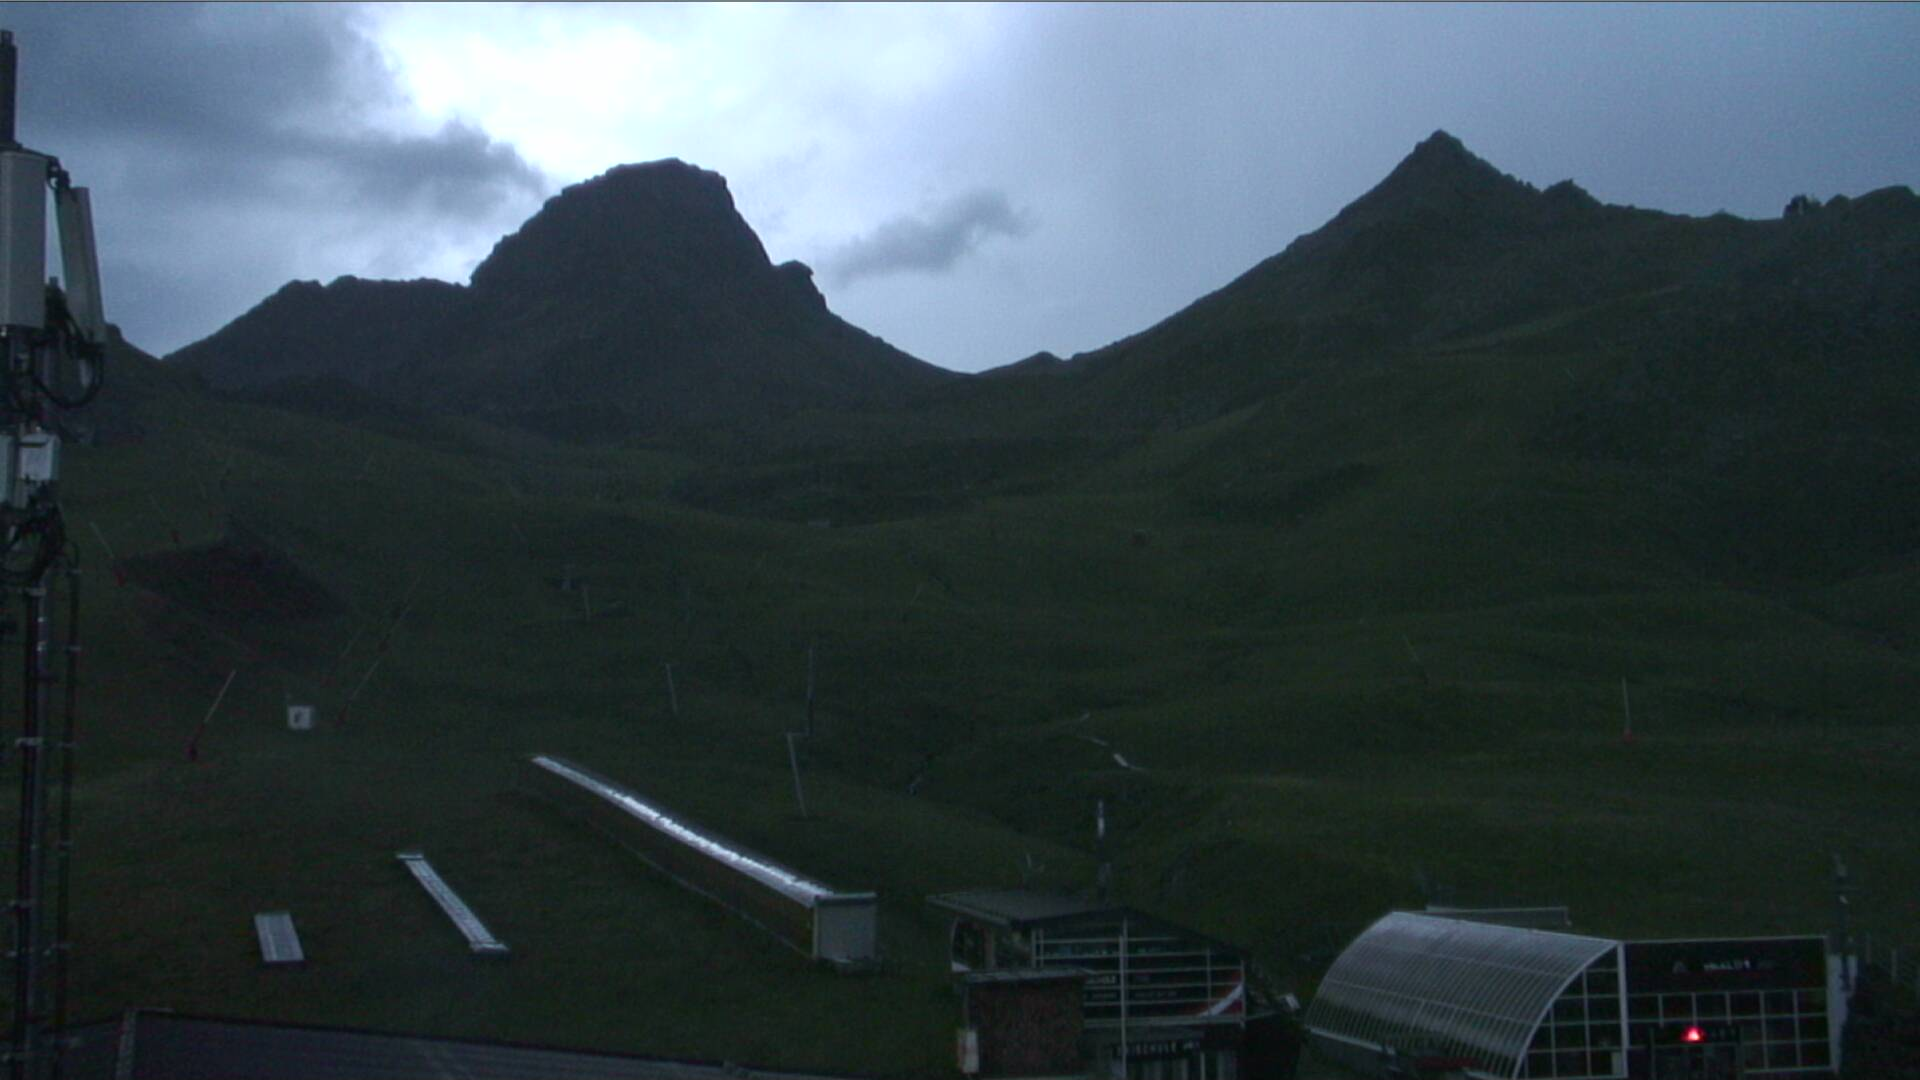 Webcam courtesy of ischgl.com